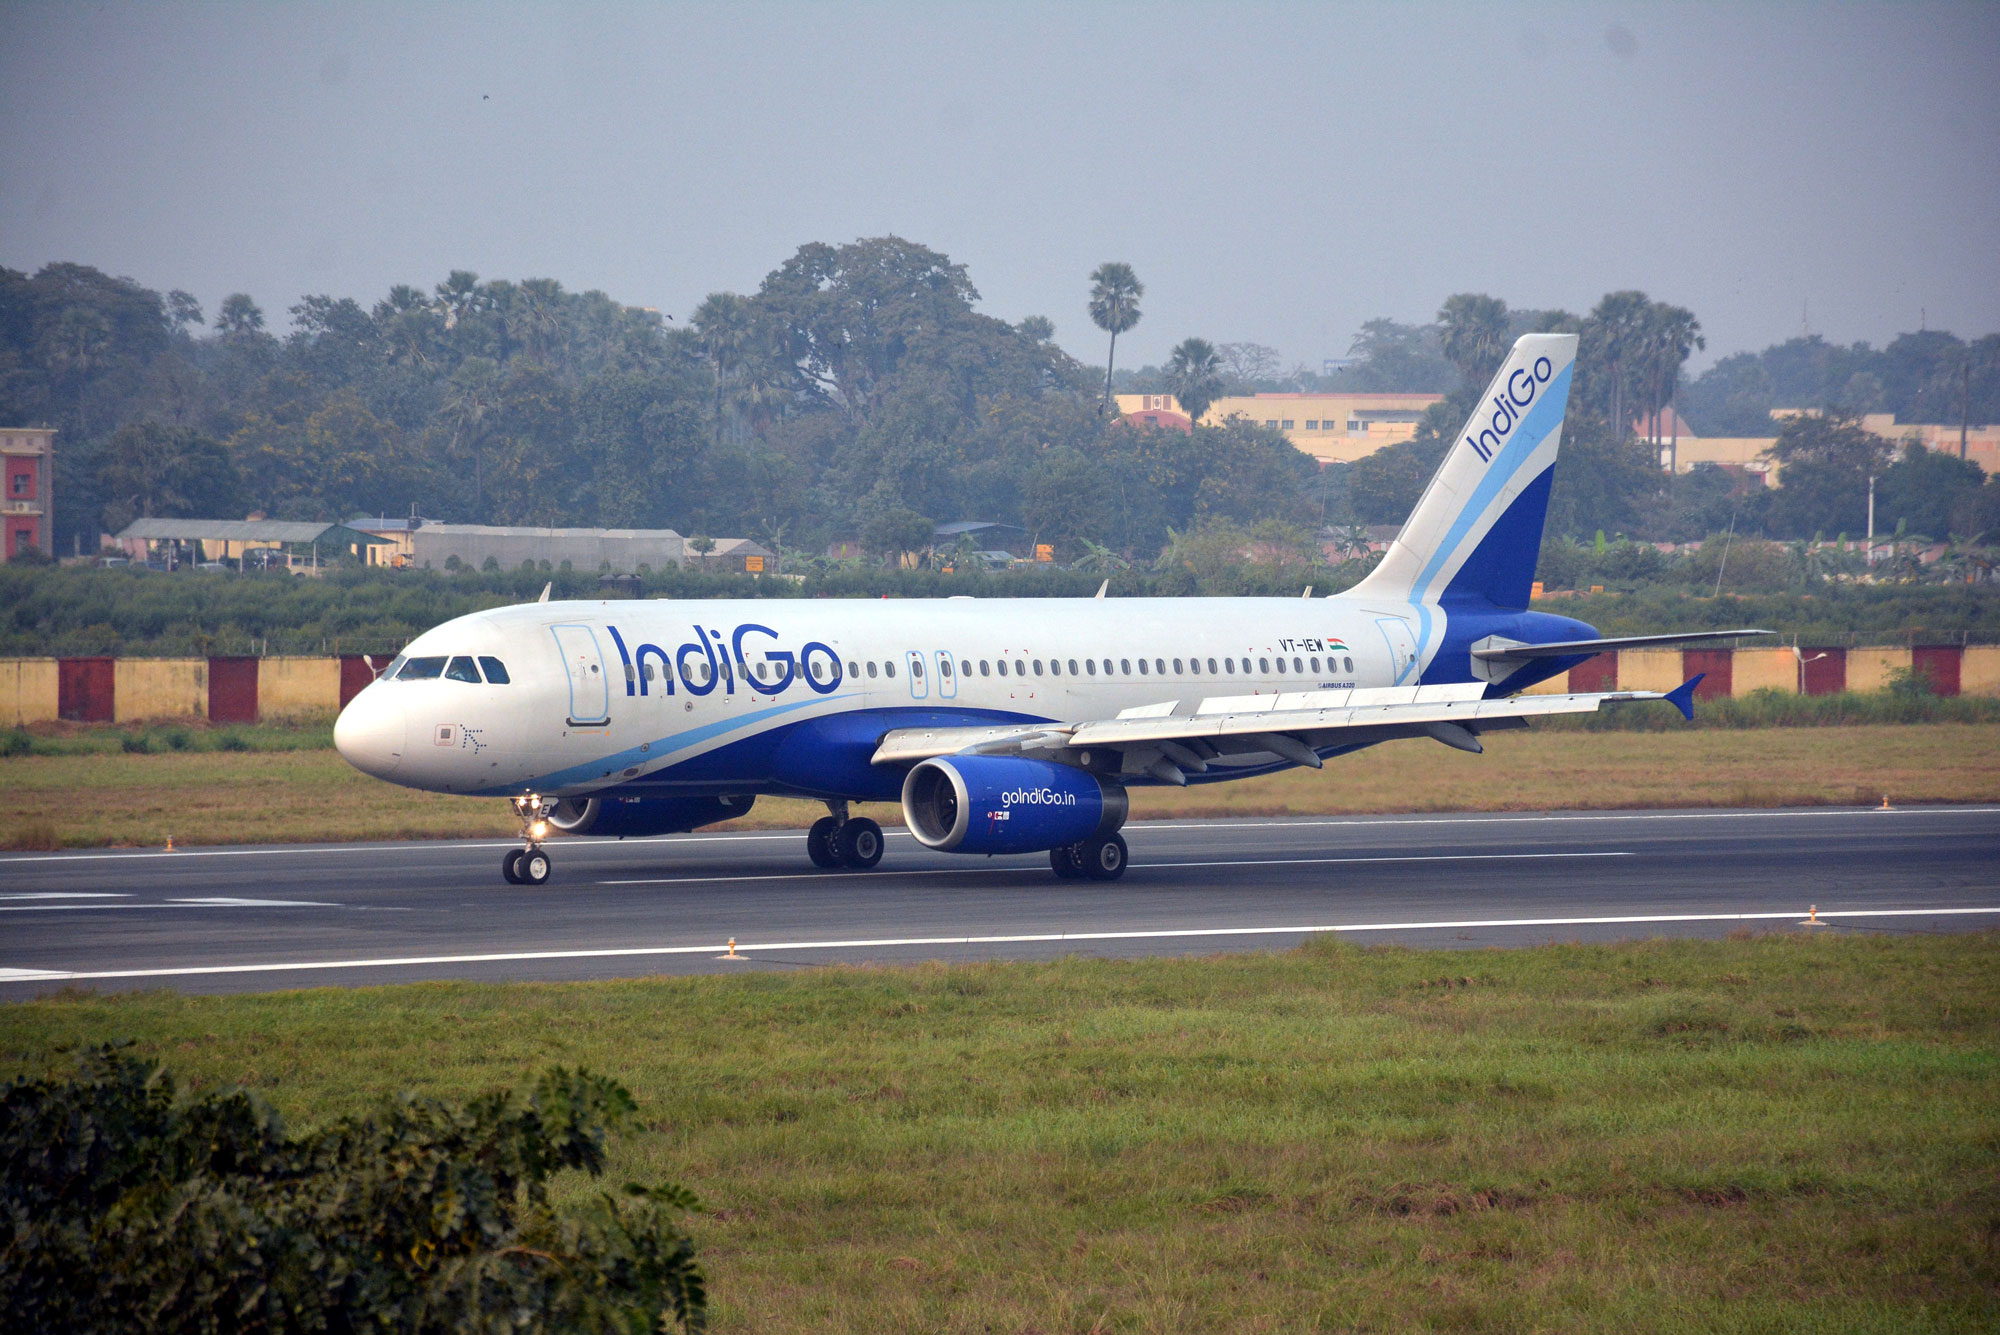 Male will be connected with Mumbai, Bangalore and Kochi, while services to Phuket will be operated from Delhi, IndiGo said in a release.